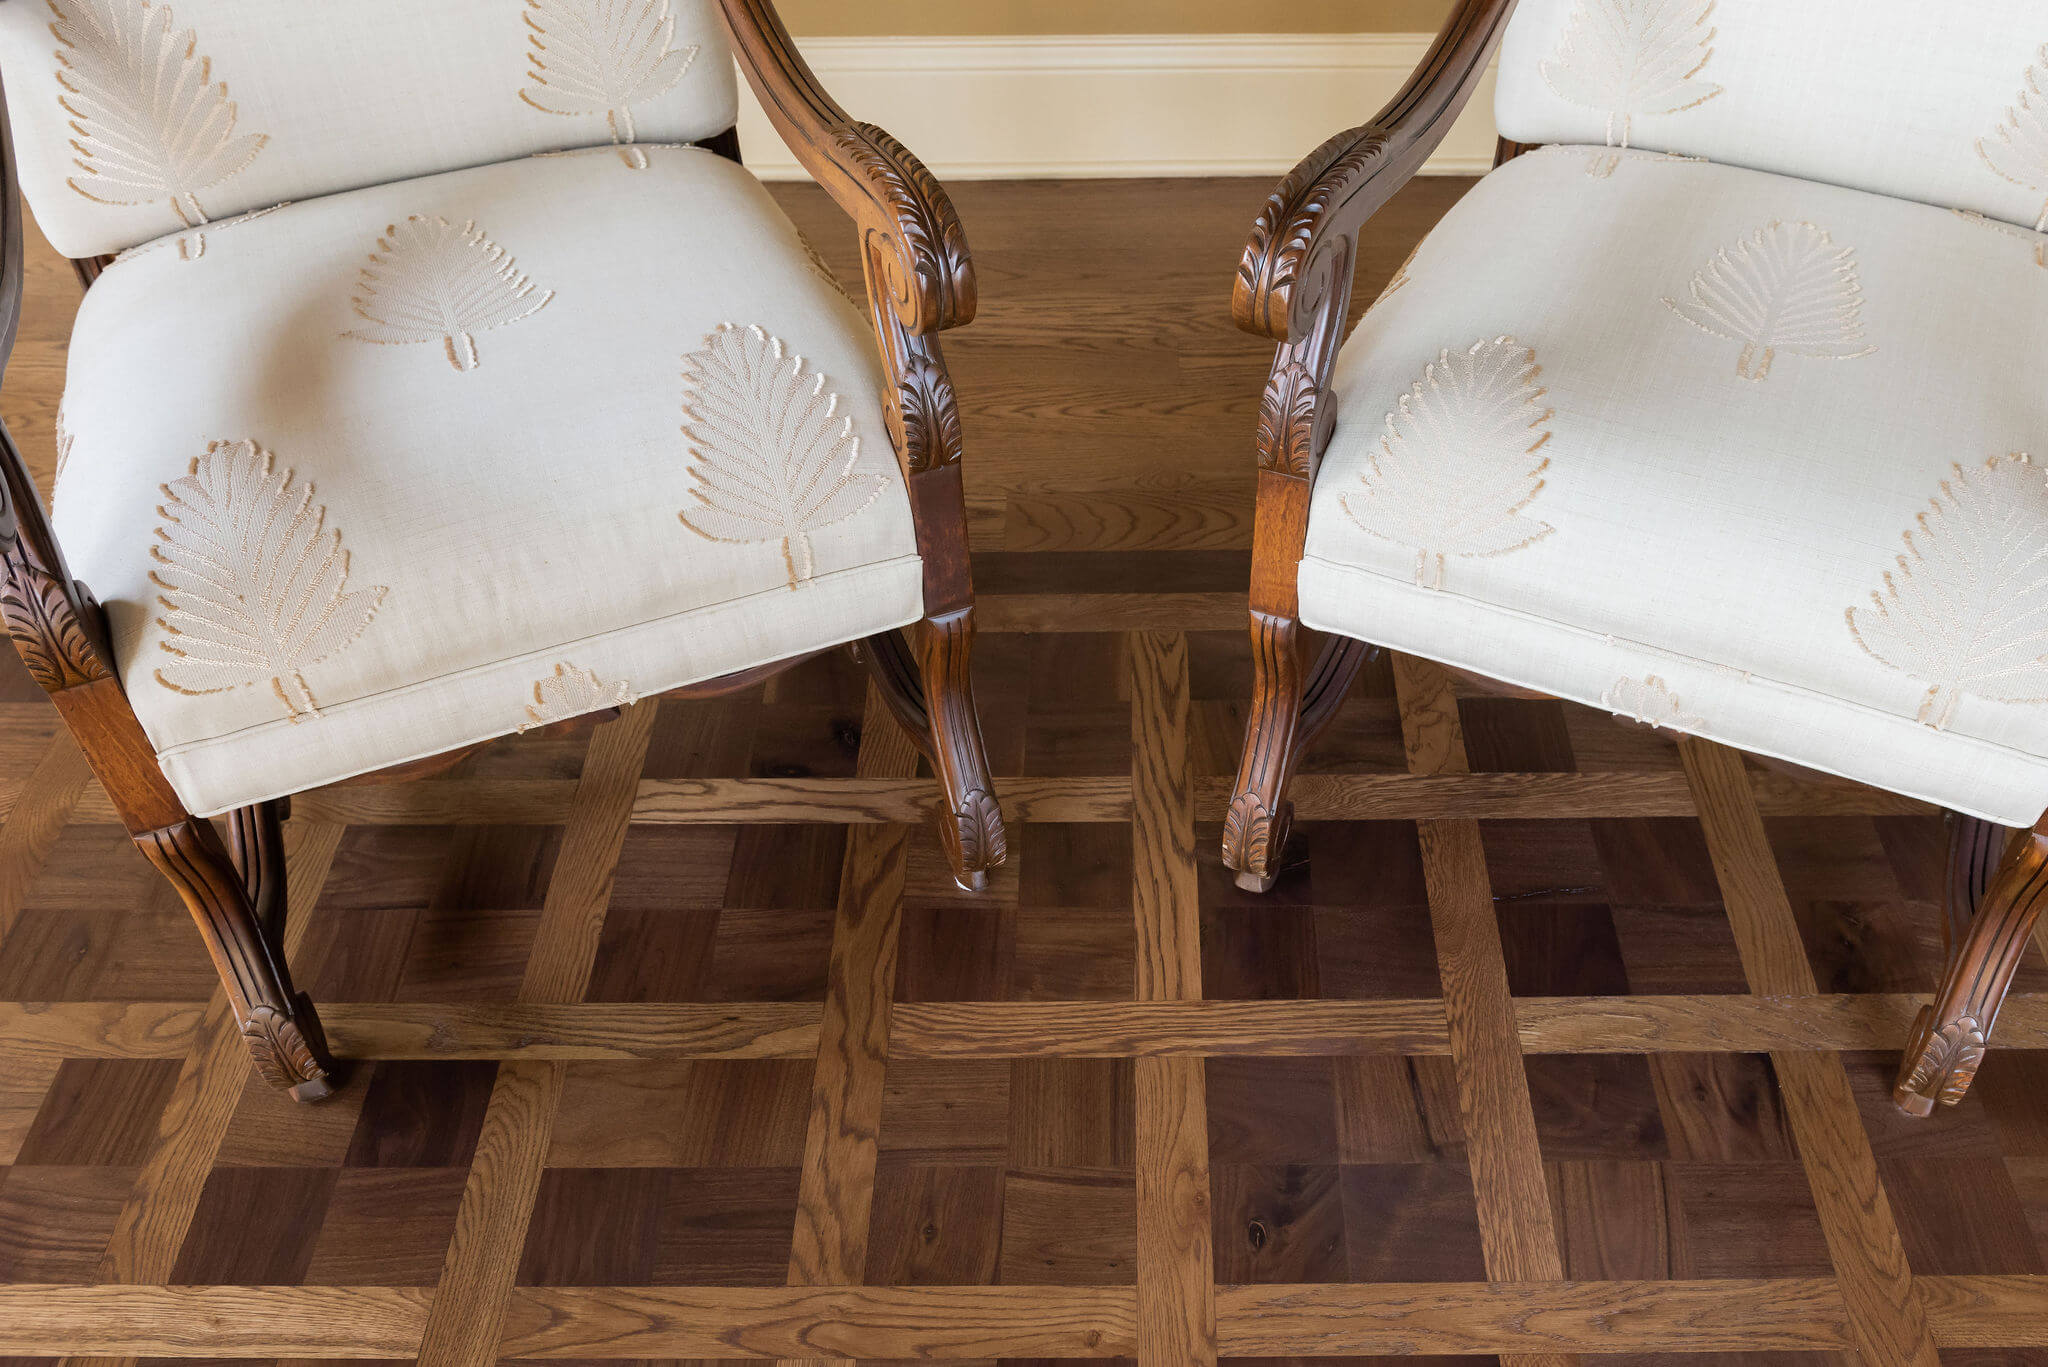 Chairs on a parquet wood floor finished with Rubio Monocoat.